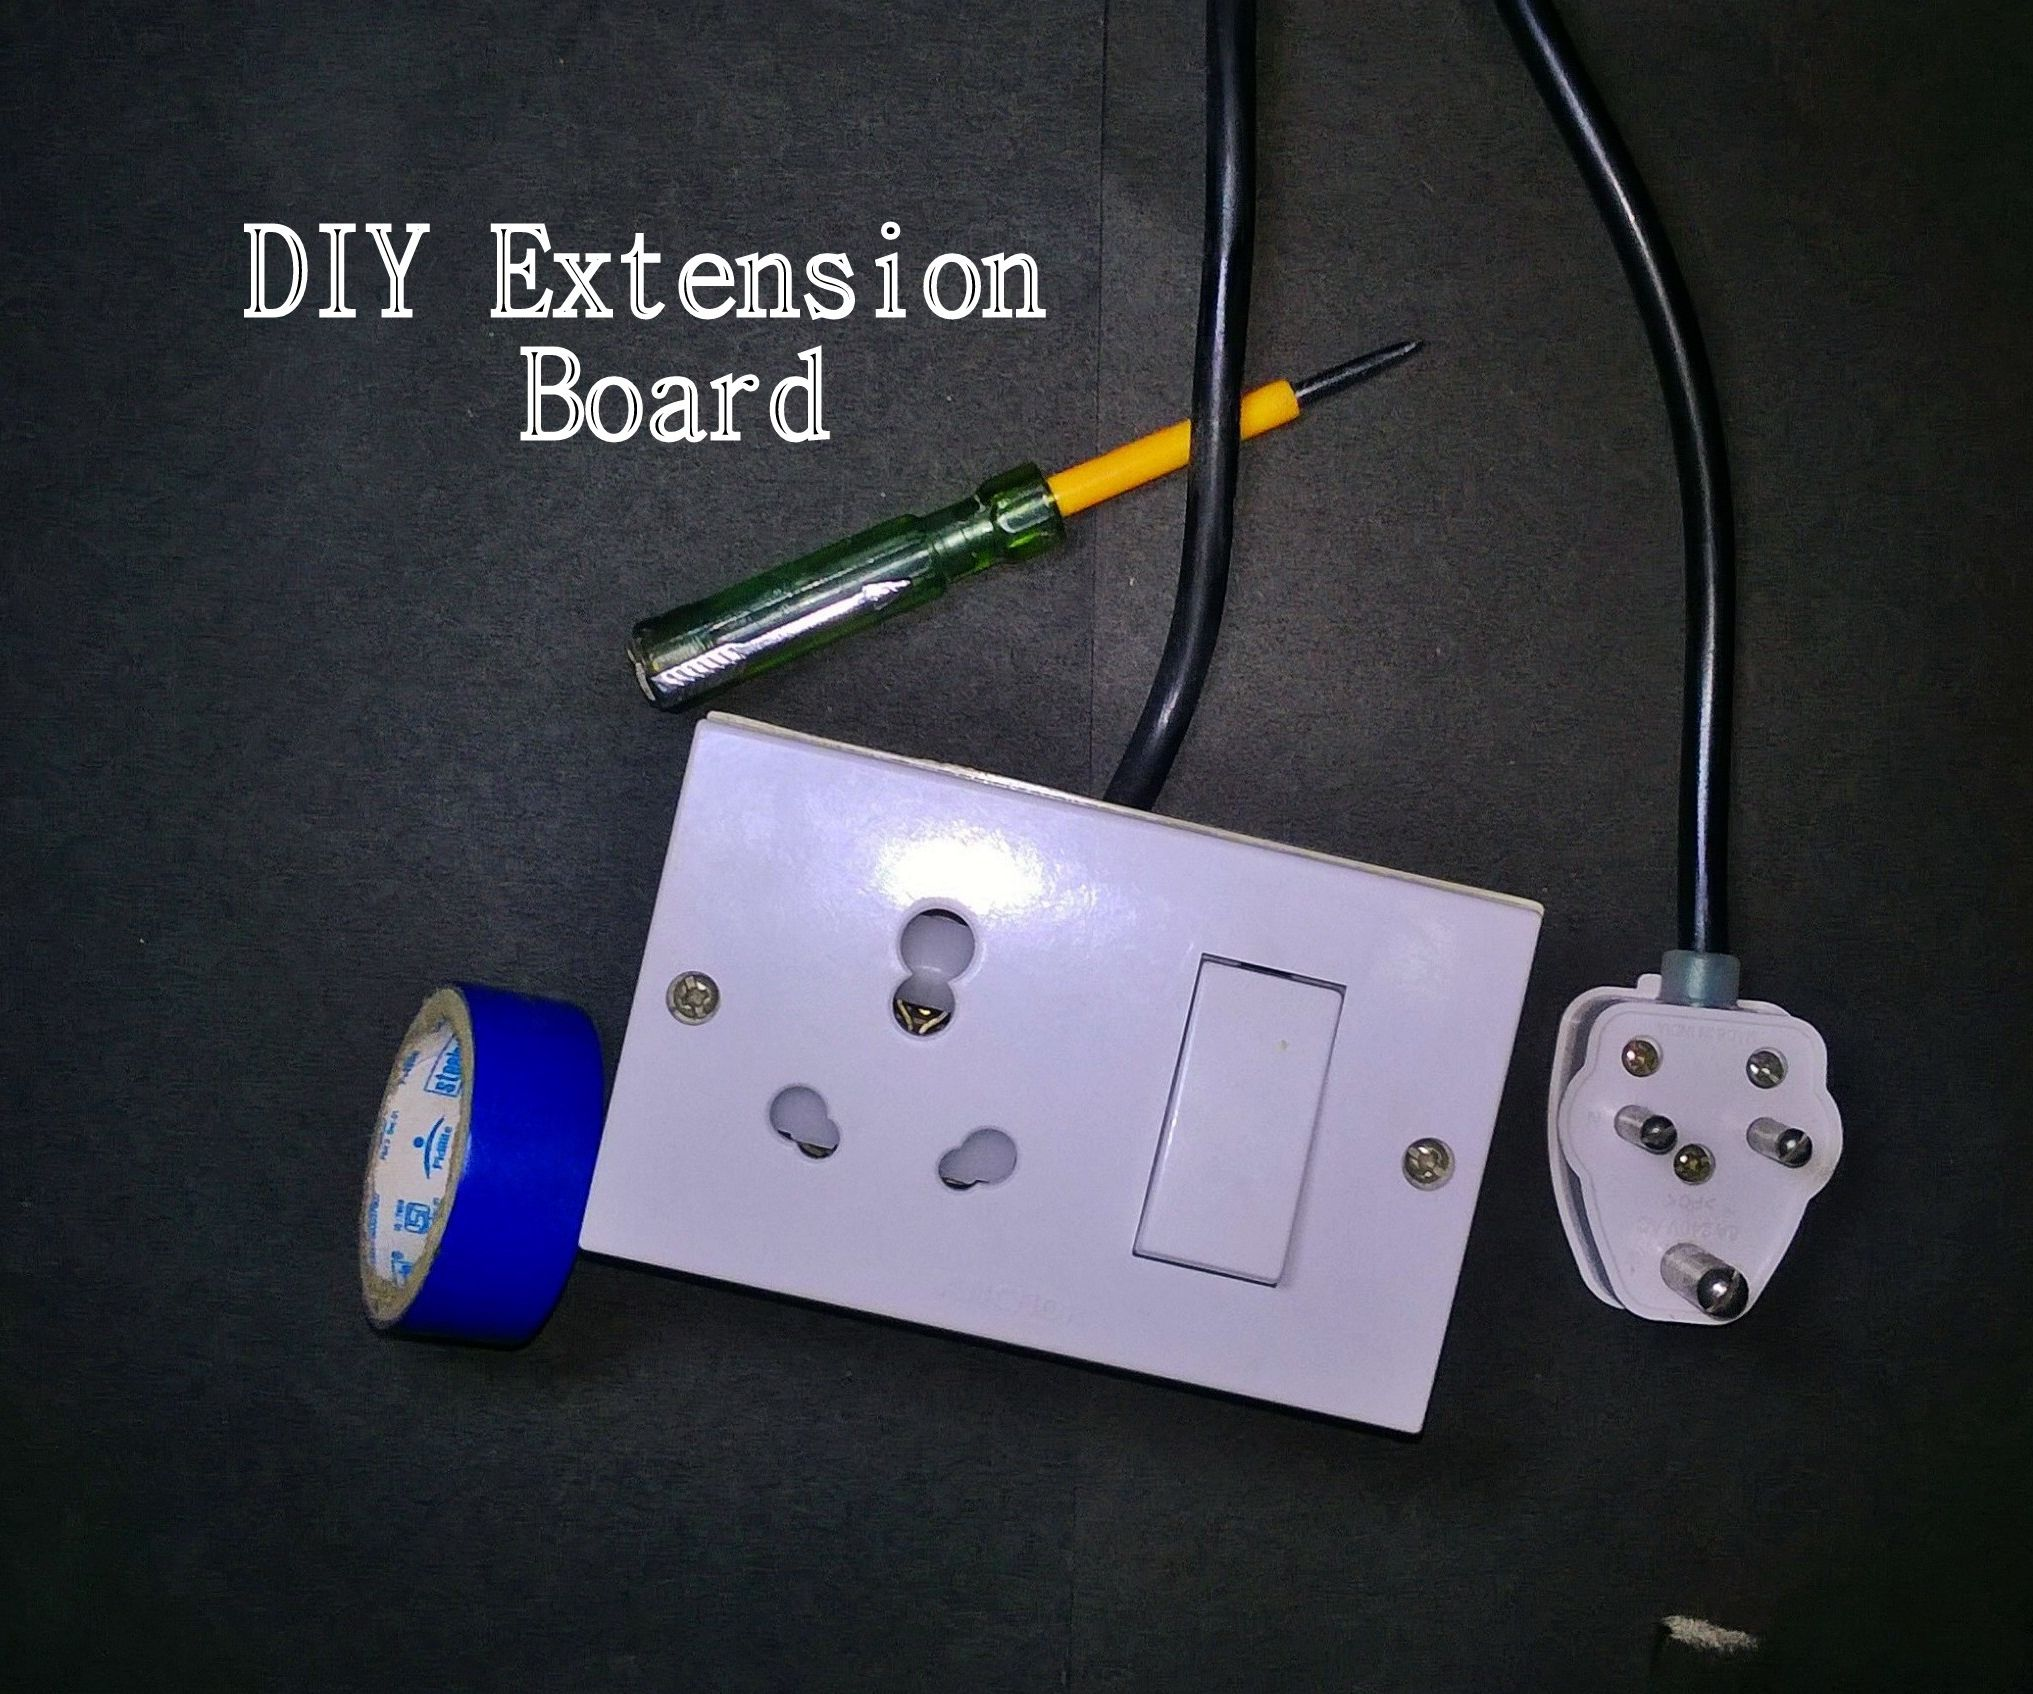 DIY Extension Board